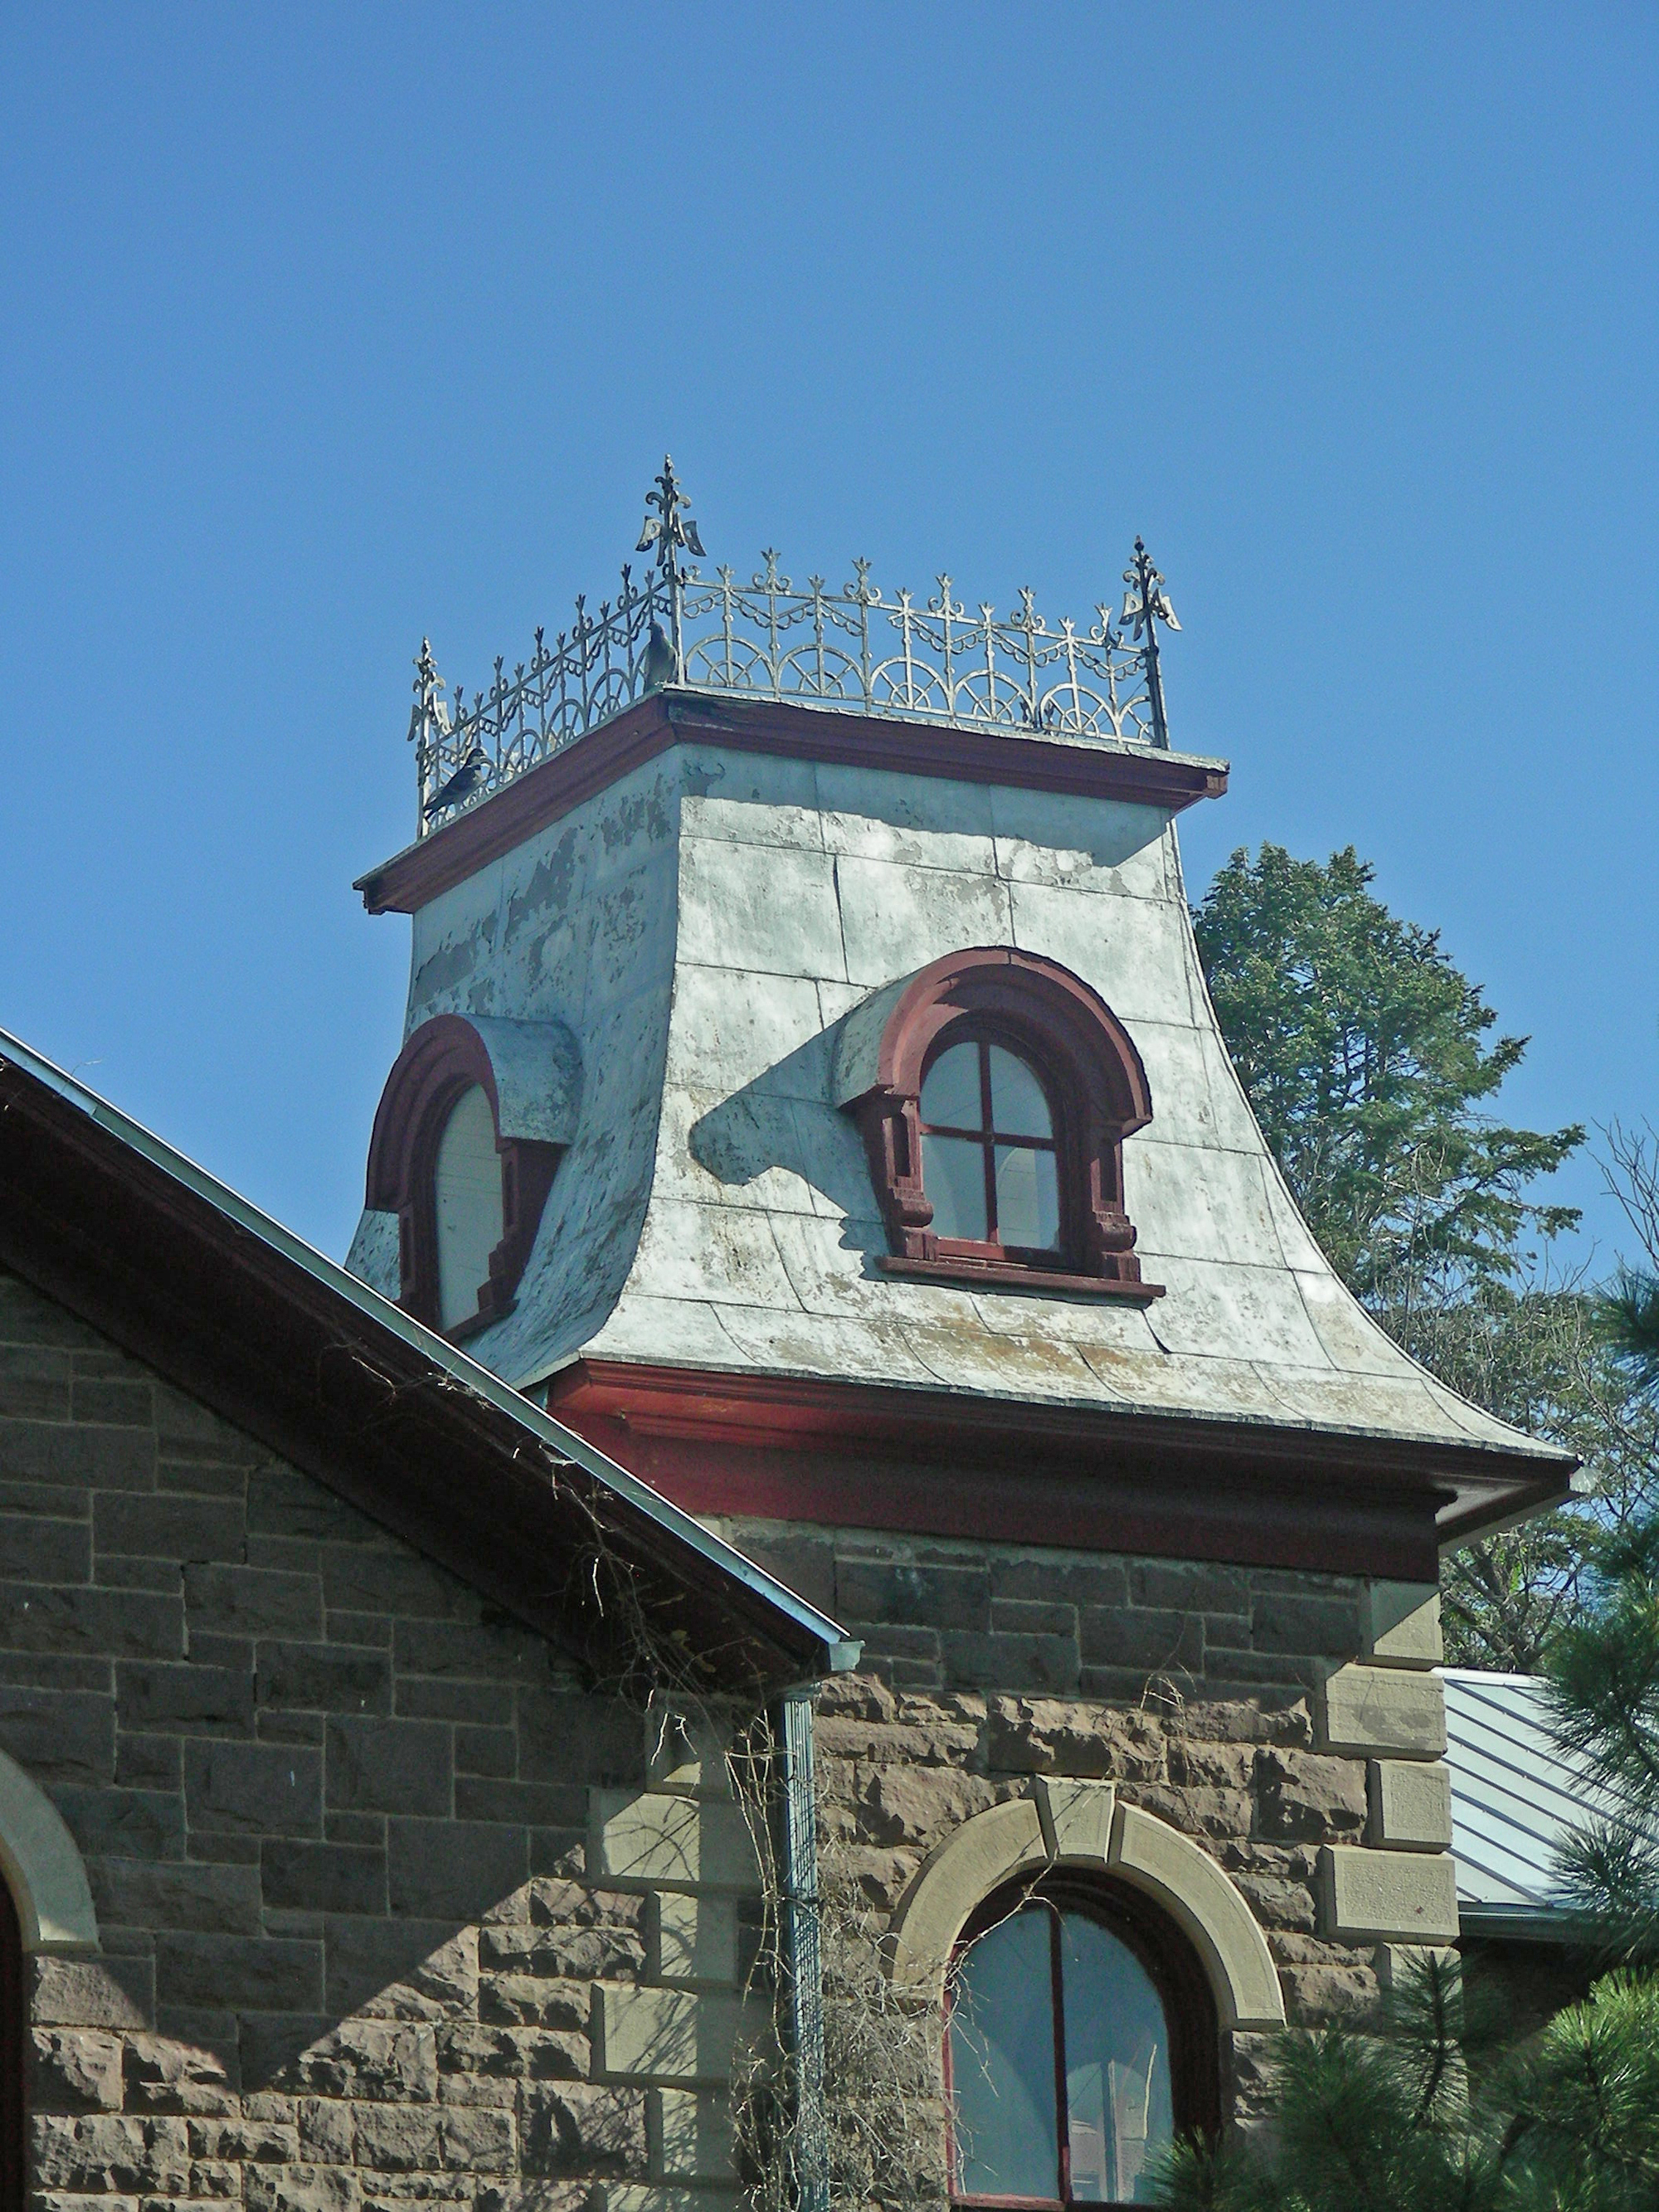 Original roof features such as this roof tower with iron cresting and wooden window molding add character, and warrant preservation.